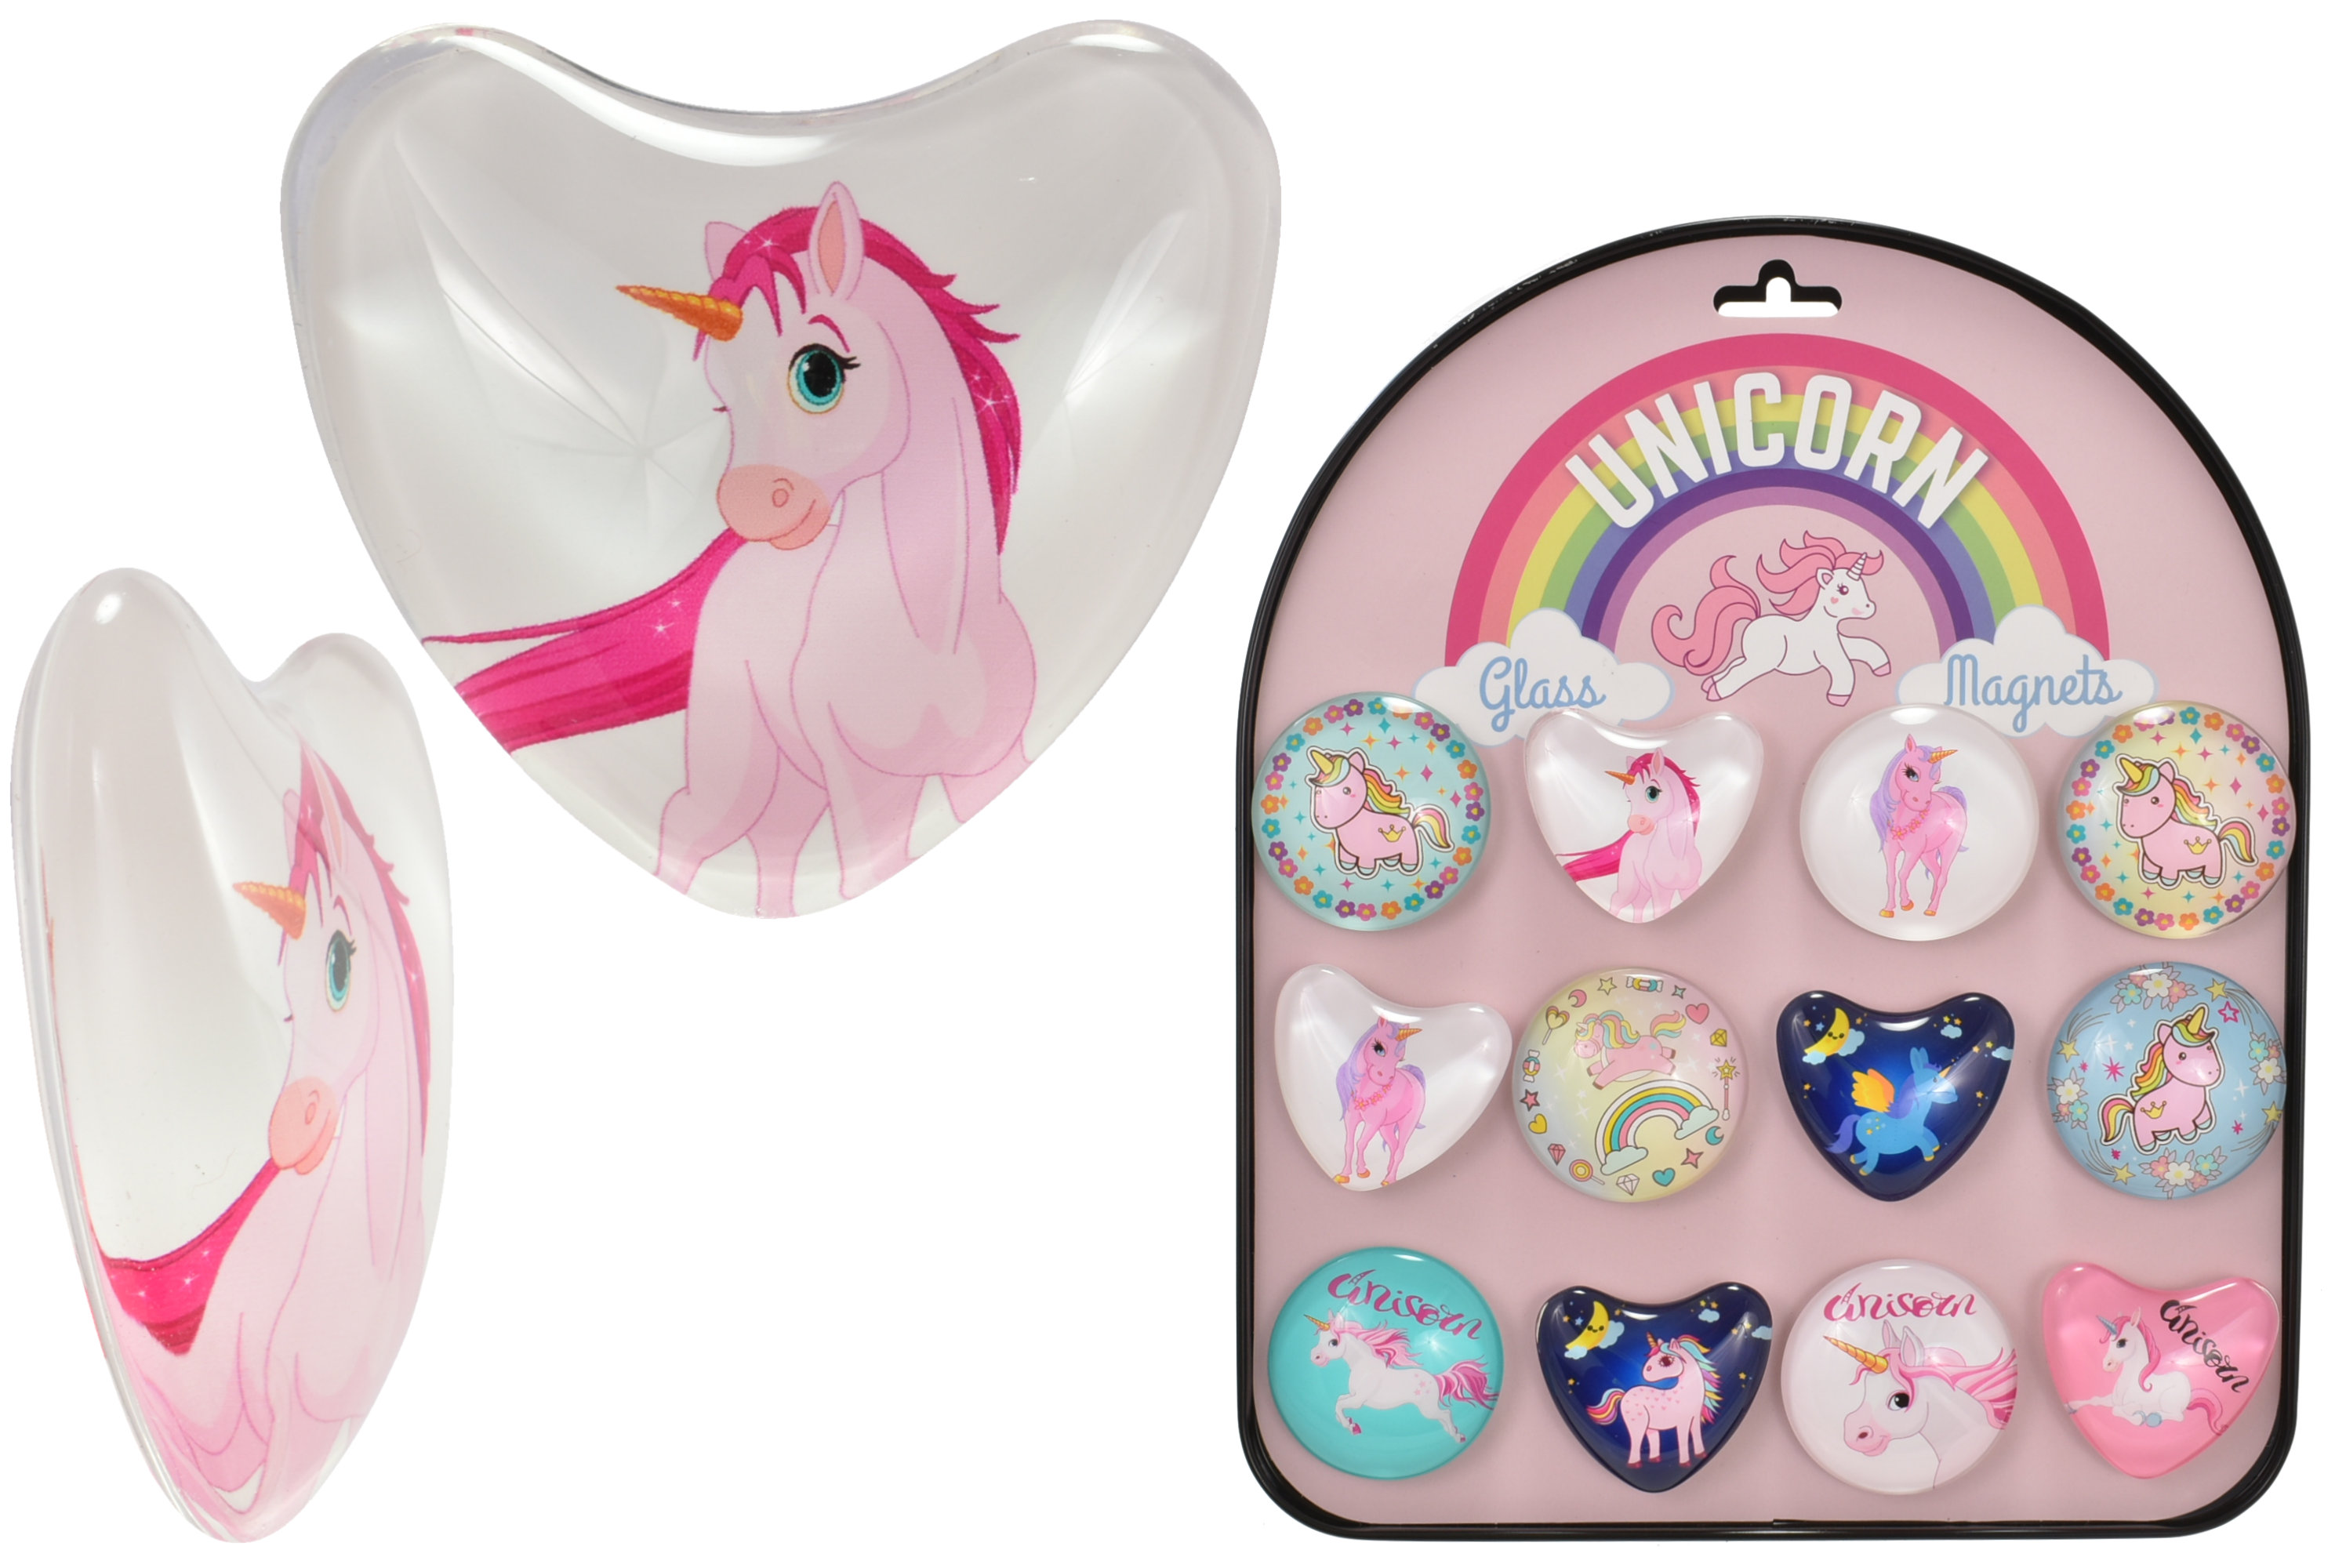 5cm Unicorn (12 Assorted) Glass Magnets With Stand